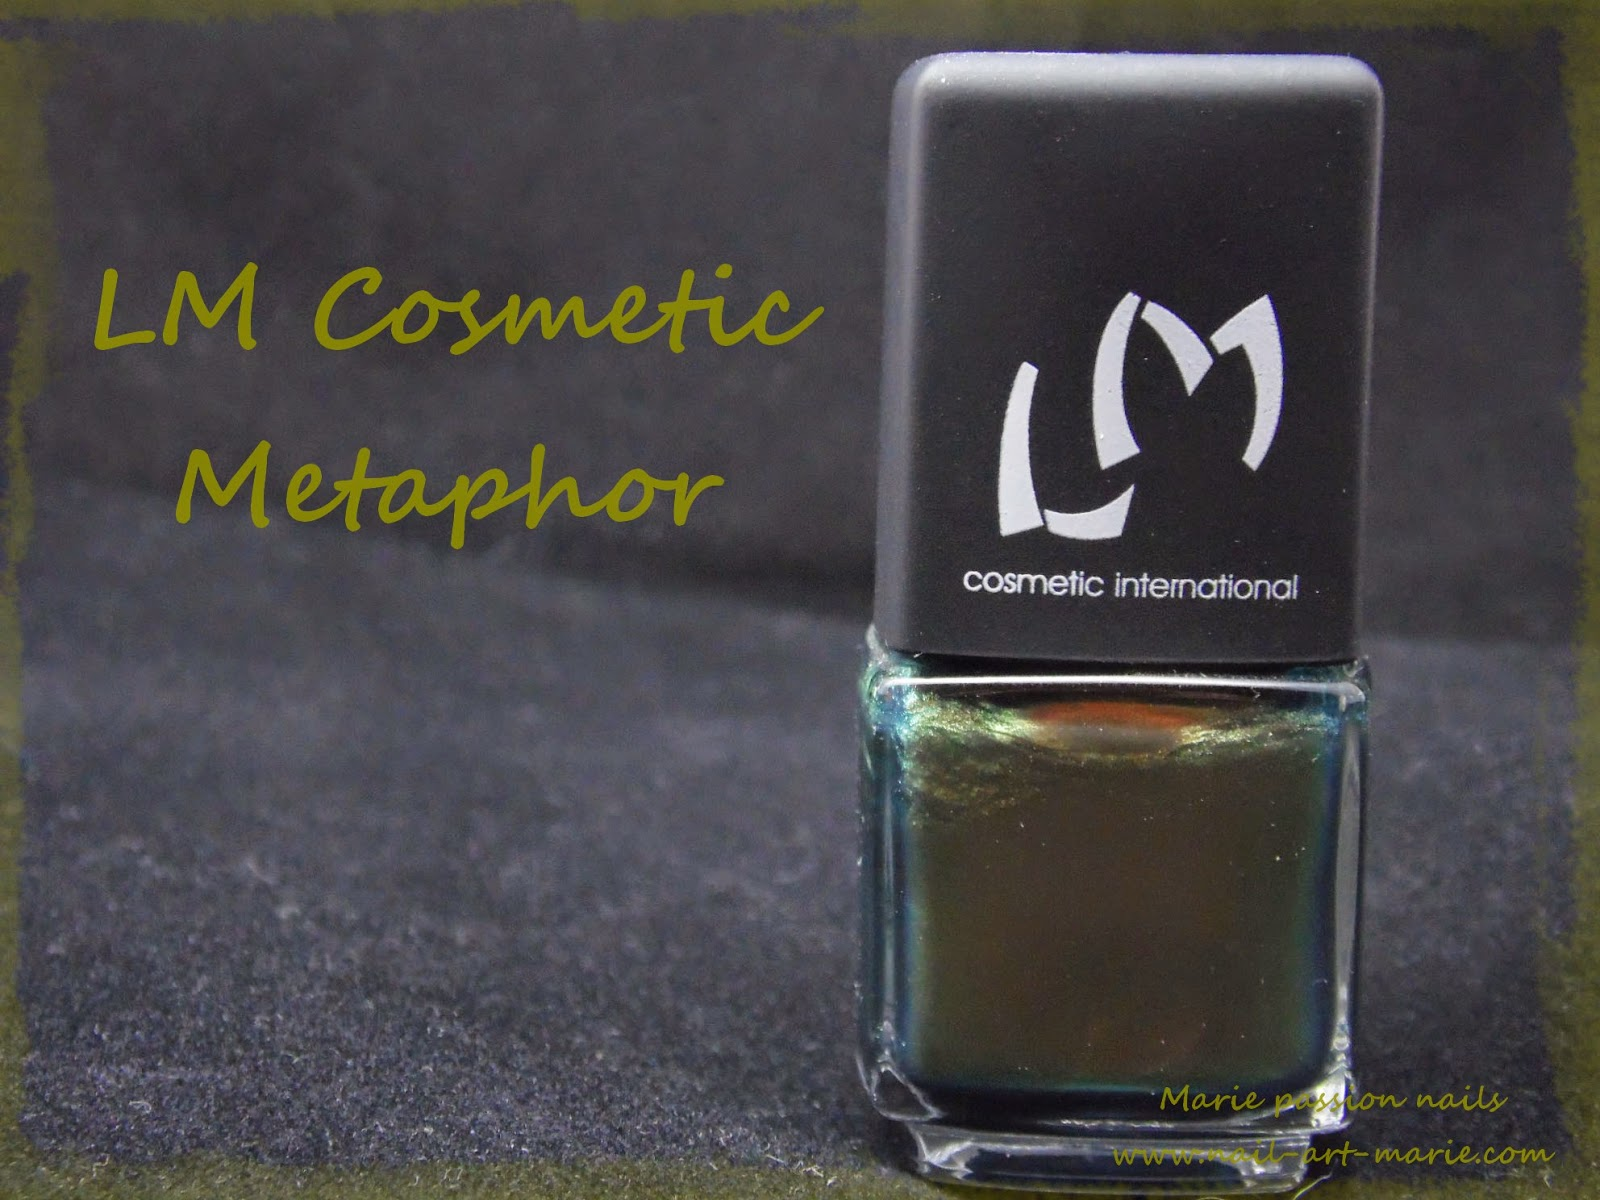 LM Cosmetic Metaphor1